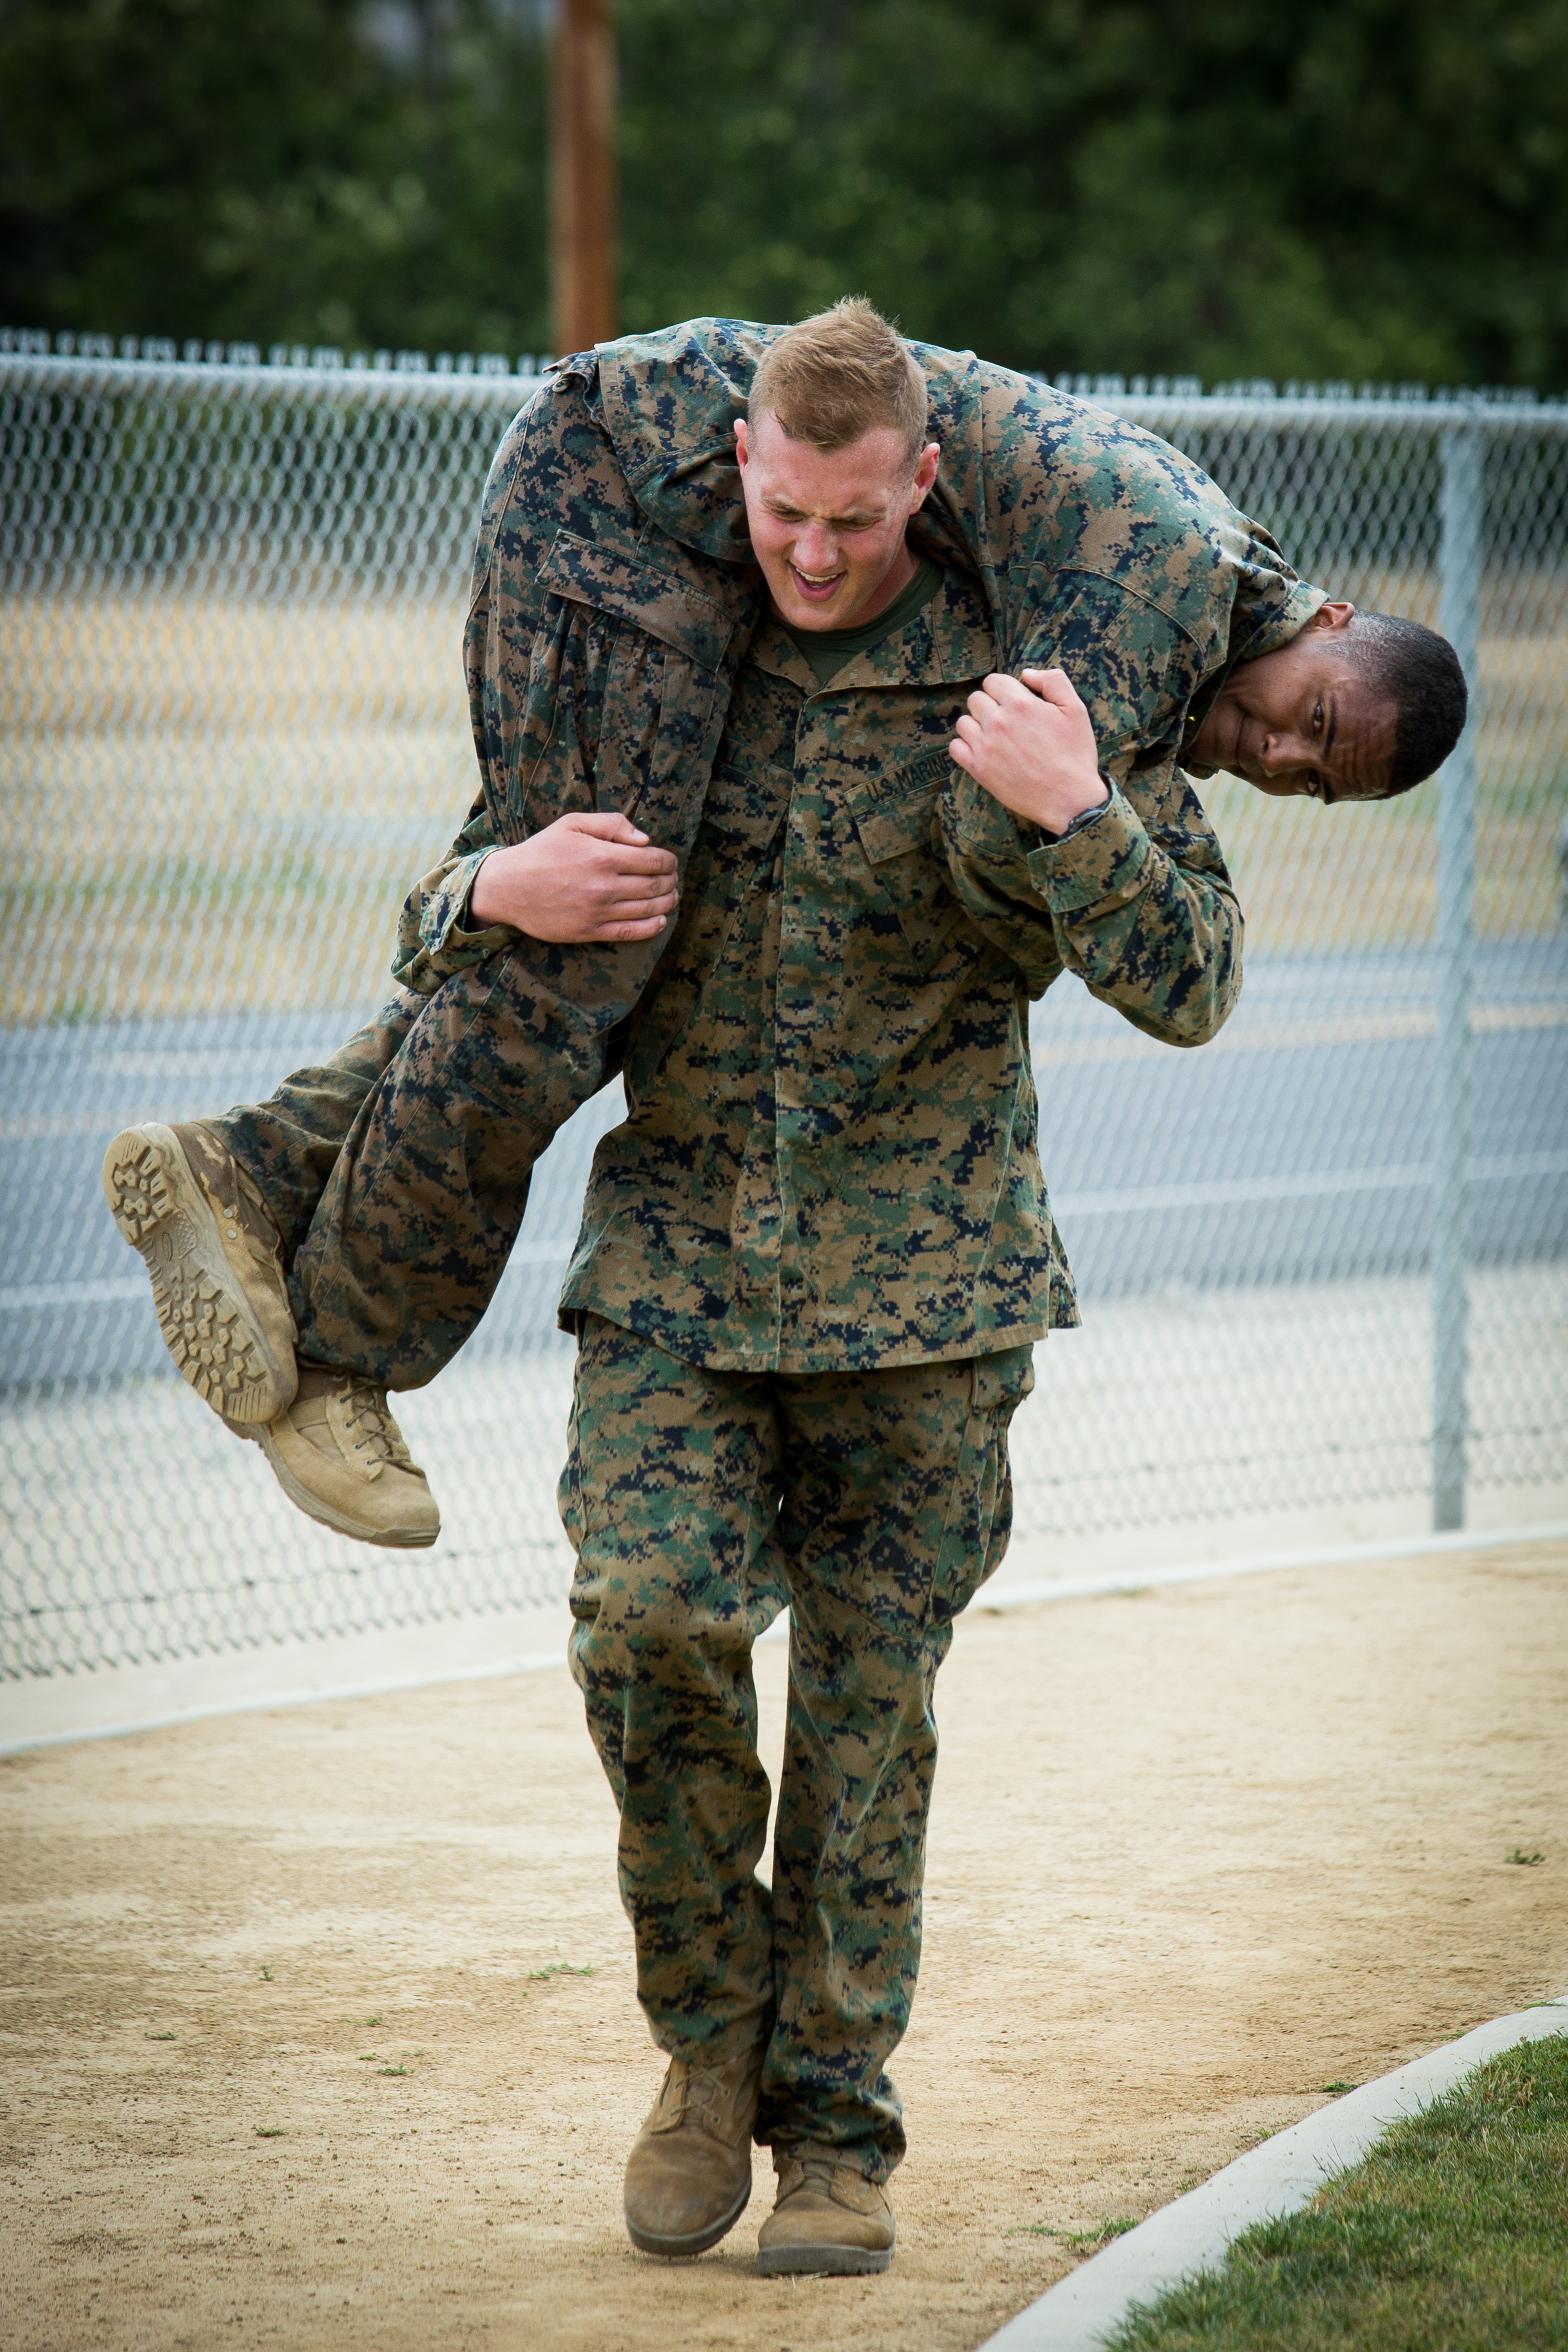 2nd Lt. Bradford Mills combat carries his teammate Sgt. Raul Elikahi in honor of their fallen brother Major Douglas Zembiec Thursday at Camp Pendleton.